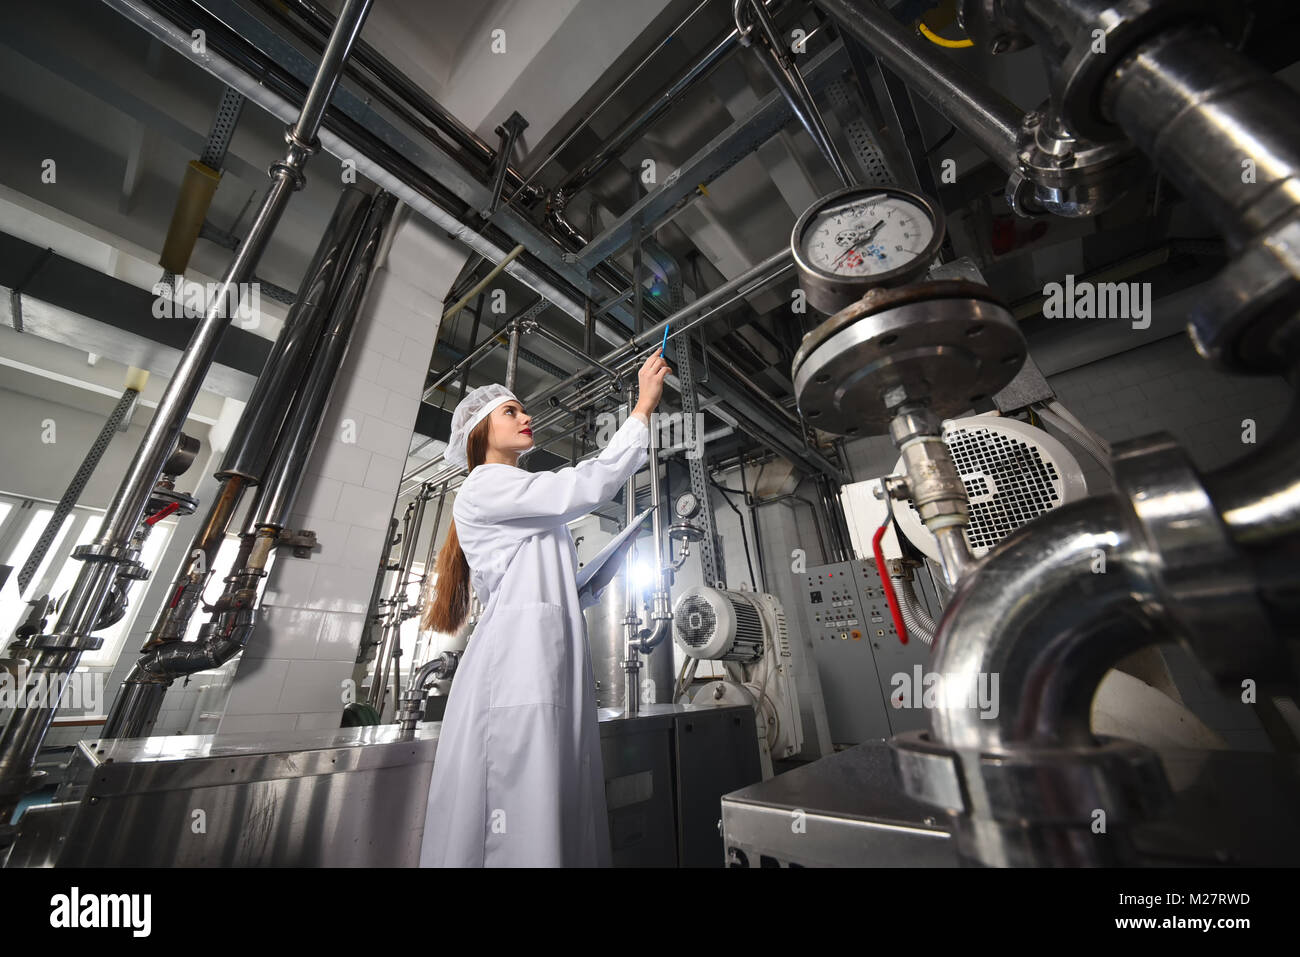 beautiful young girl in white working clothes is making a note on paper against the background of factory equipment - Stock Image